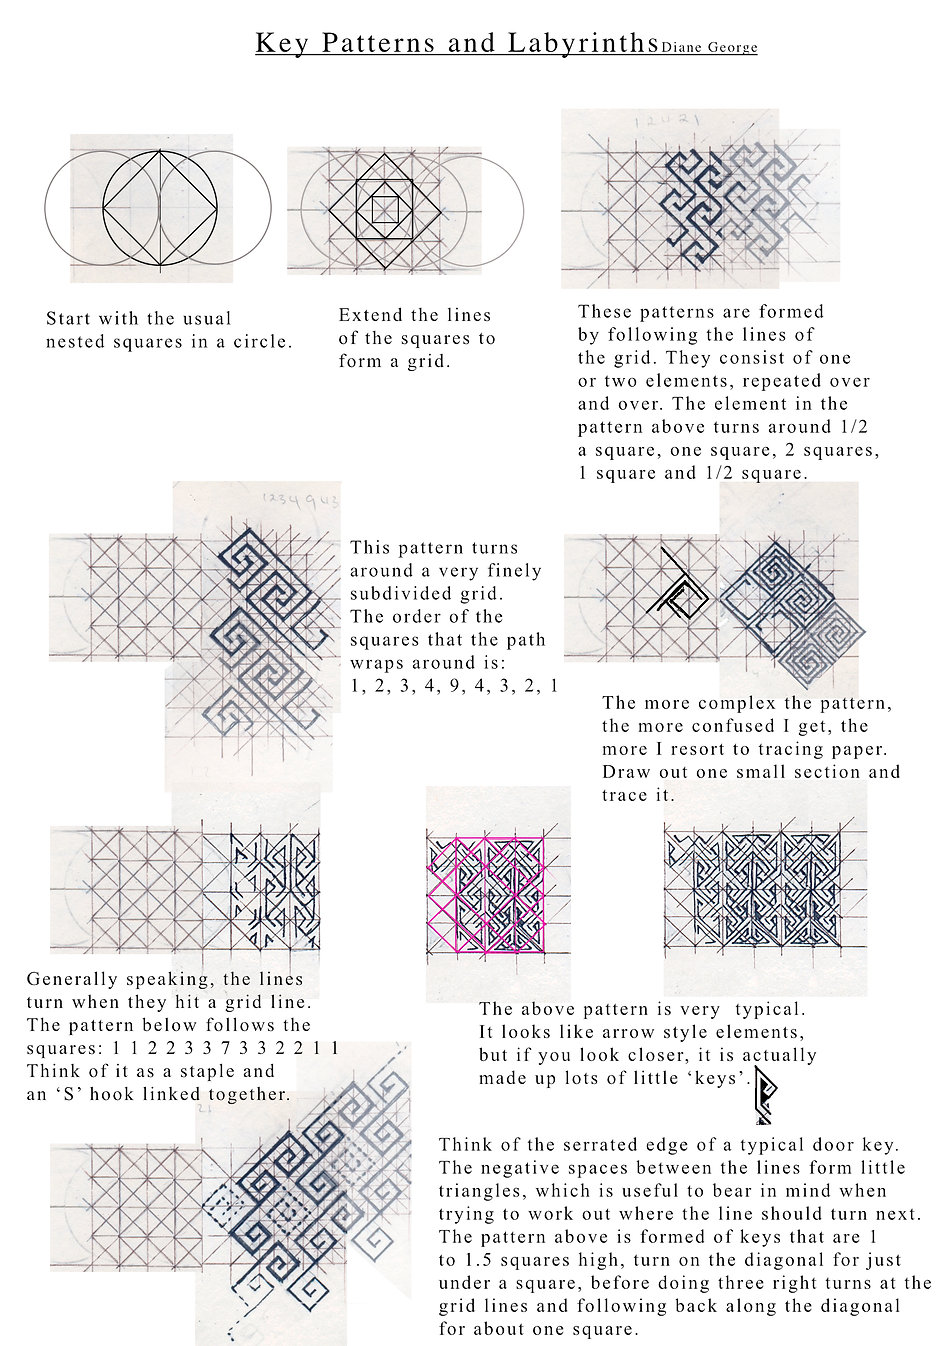 Examples of how to construct labyrinths